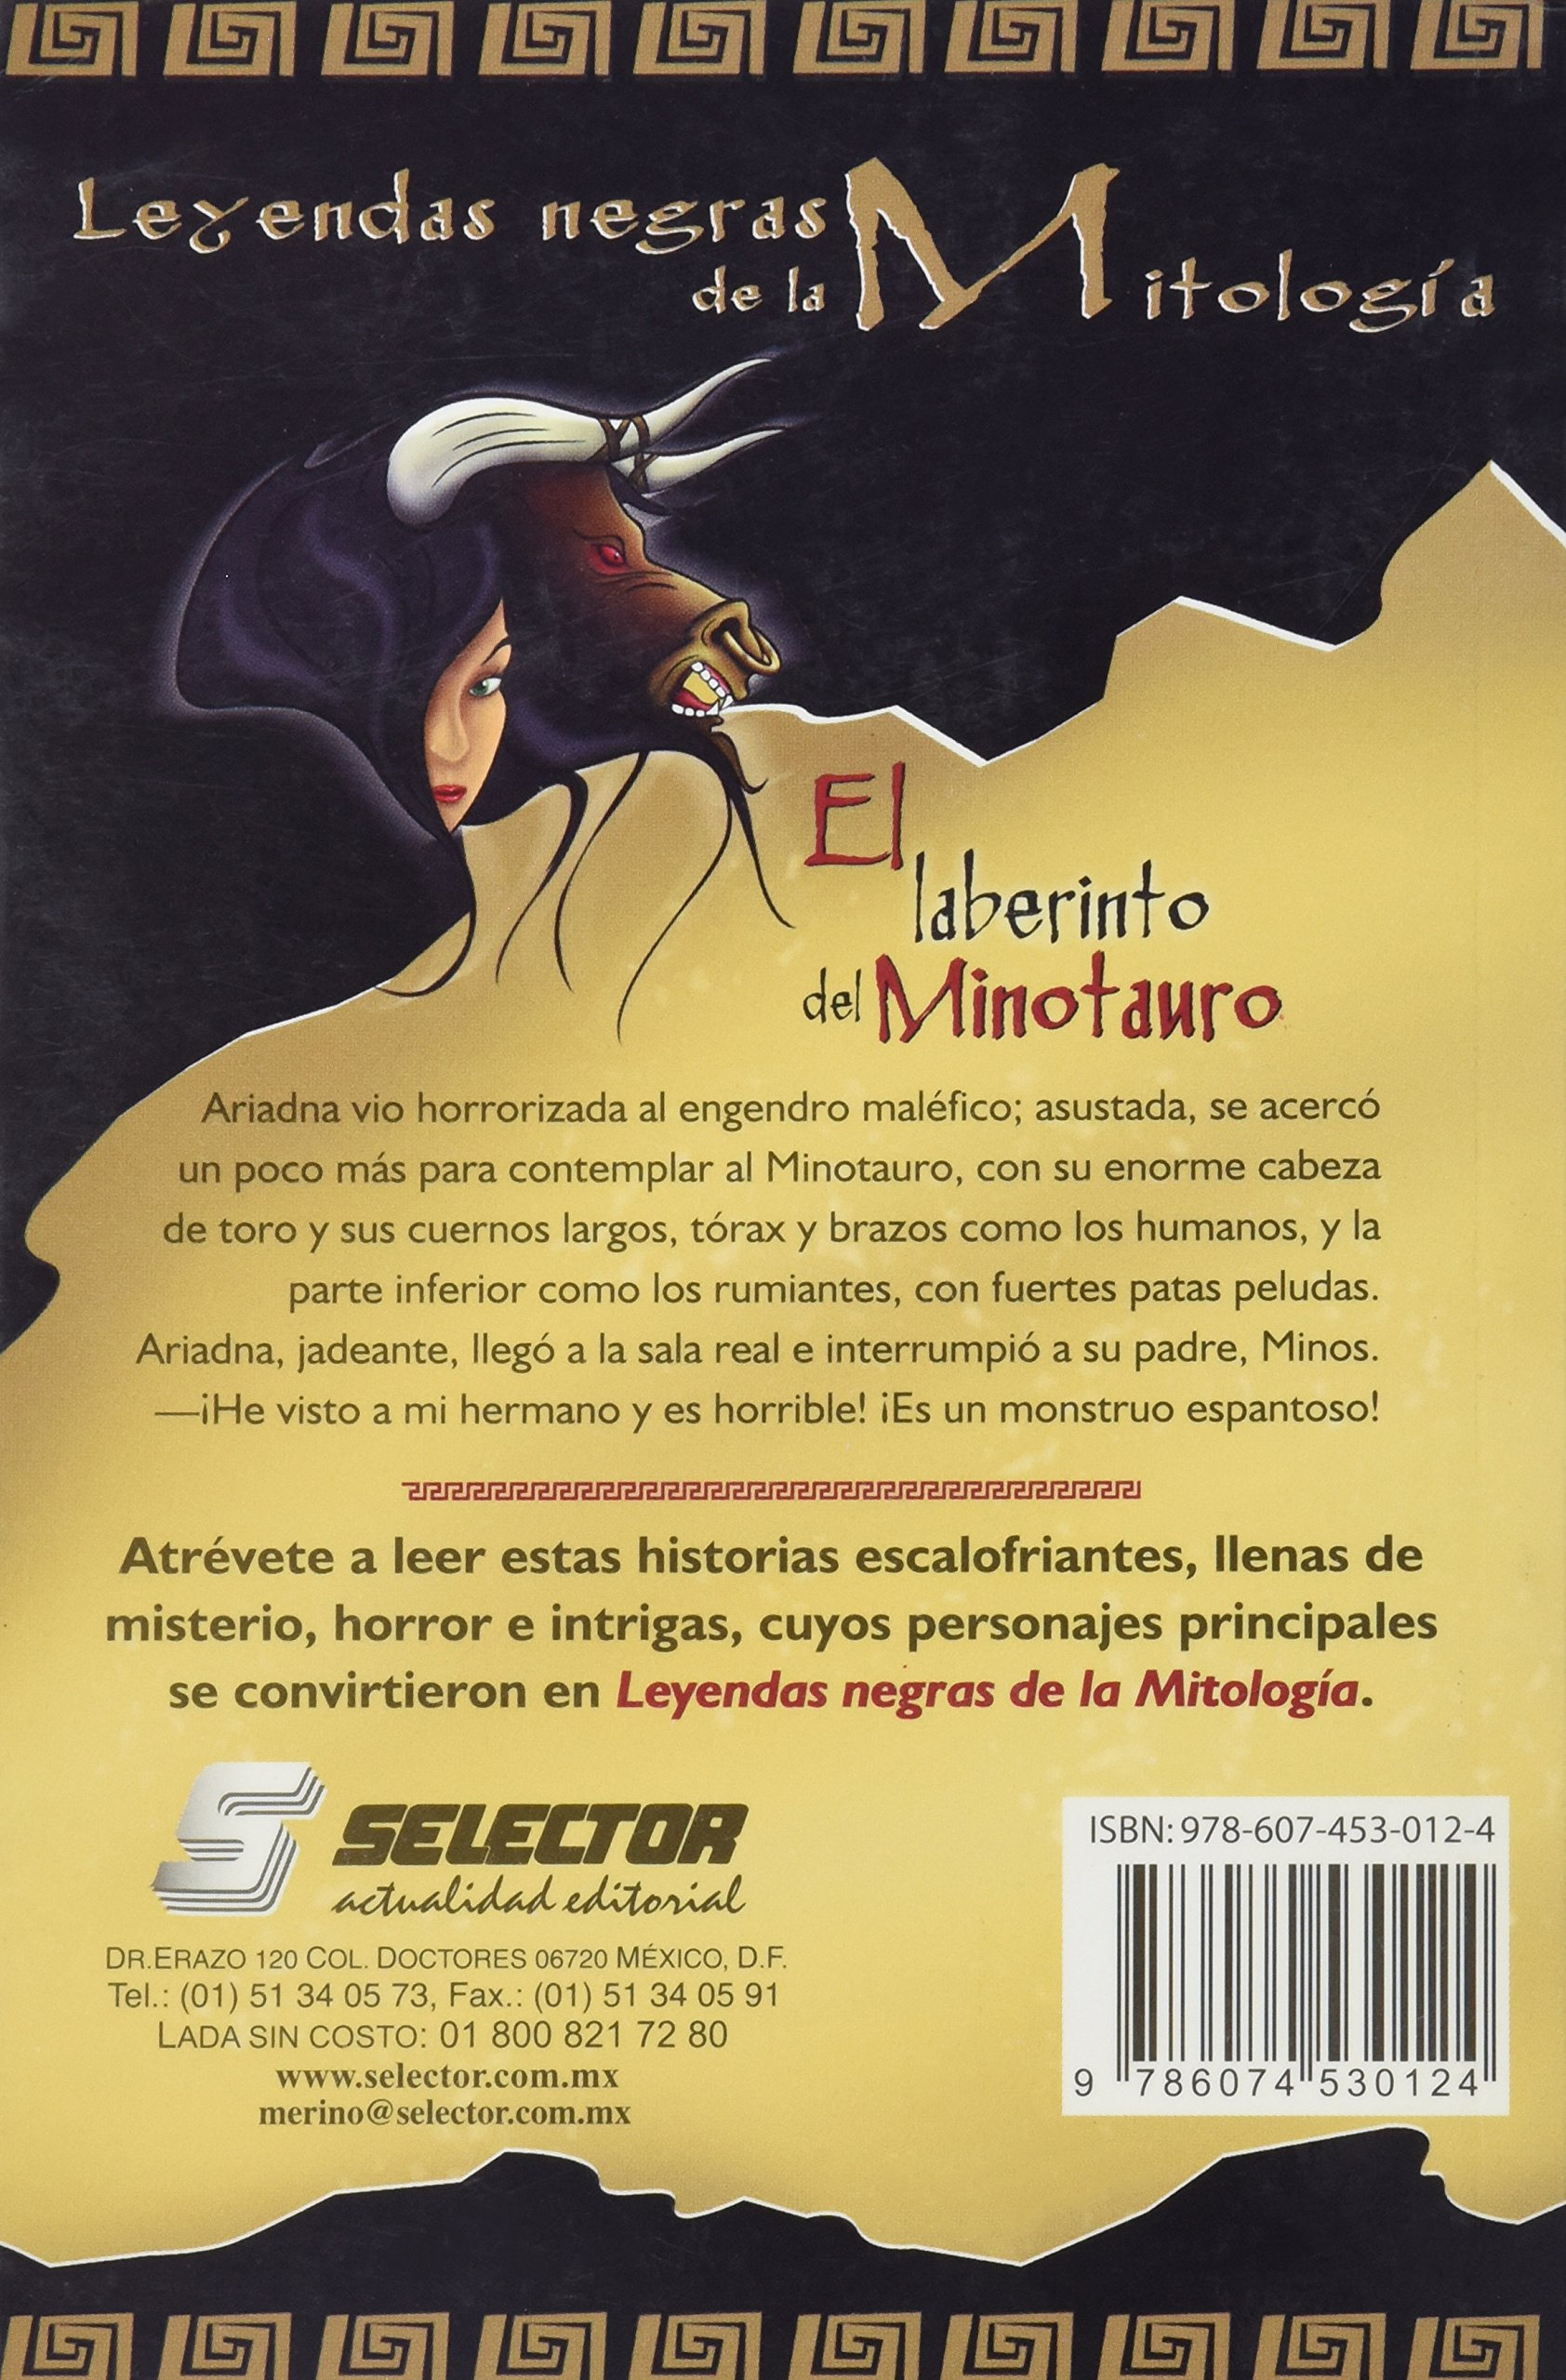 Amazon.com: El laberinto del minotauro / Labyrinth of the Minotaur (Leyendas negras de la mitologia / Dark Stories of Mythology) (Spanish Edition) ...